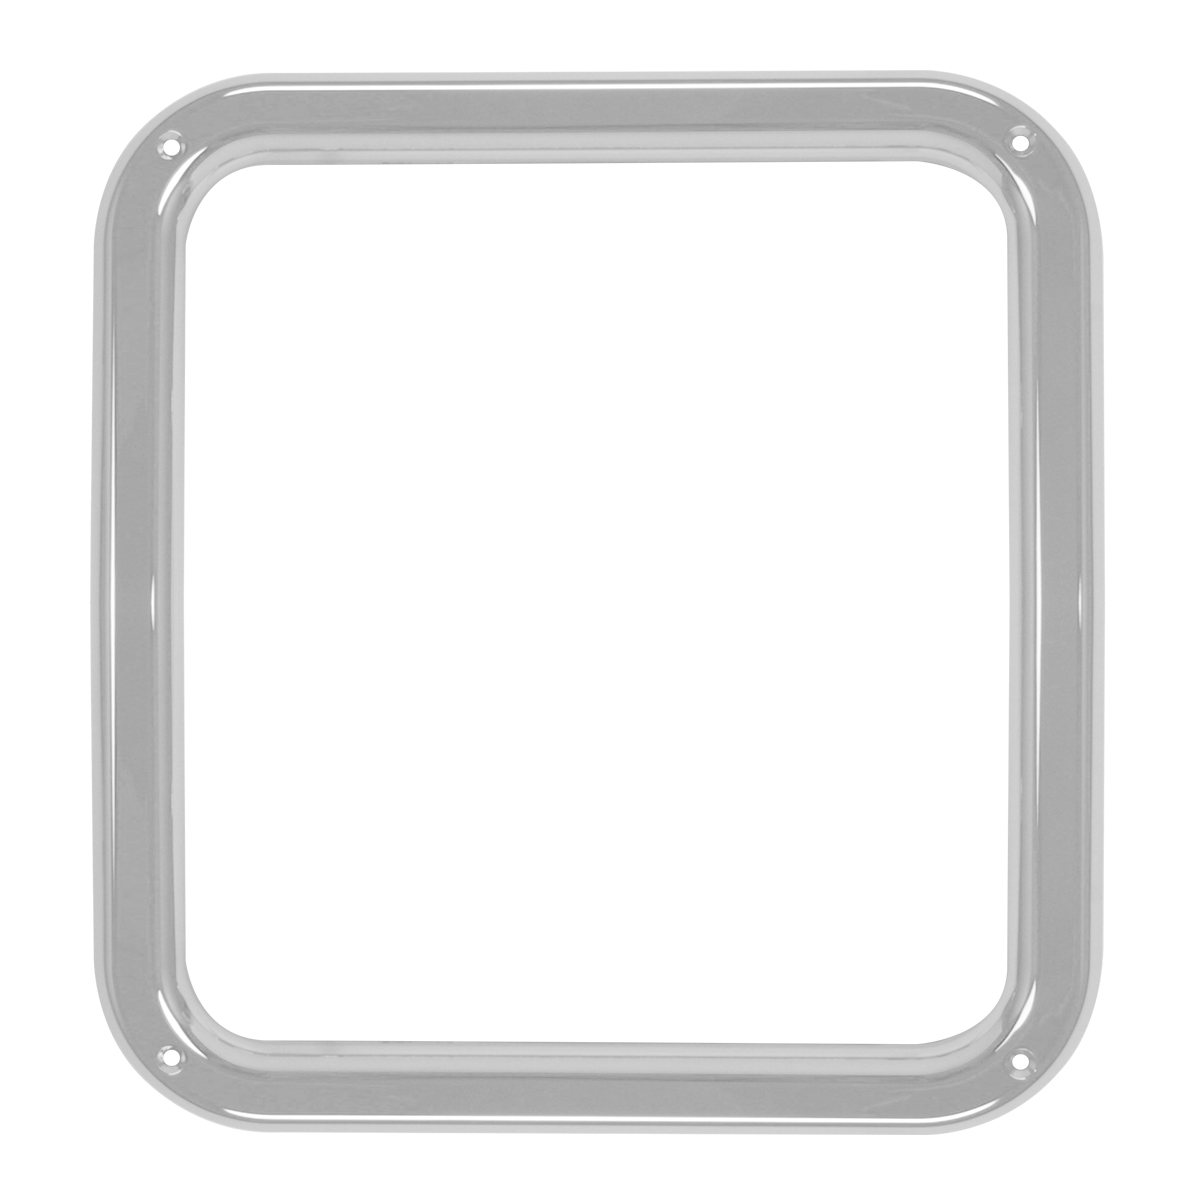 97555 Outside Daylight Cab Door Window Trim for Kenworth W900's